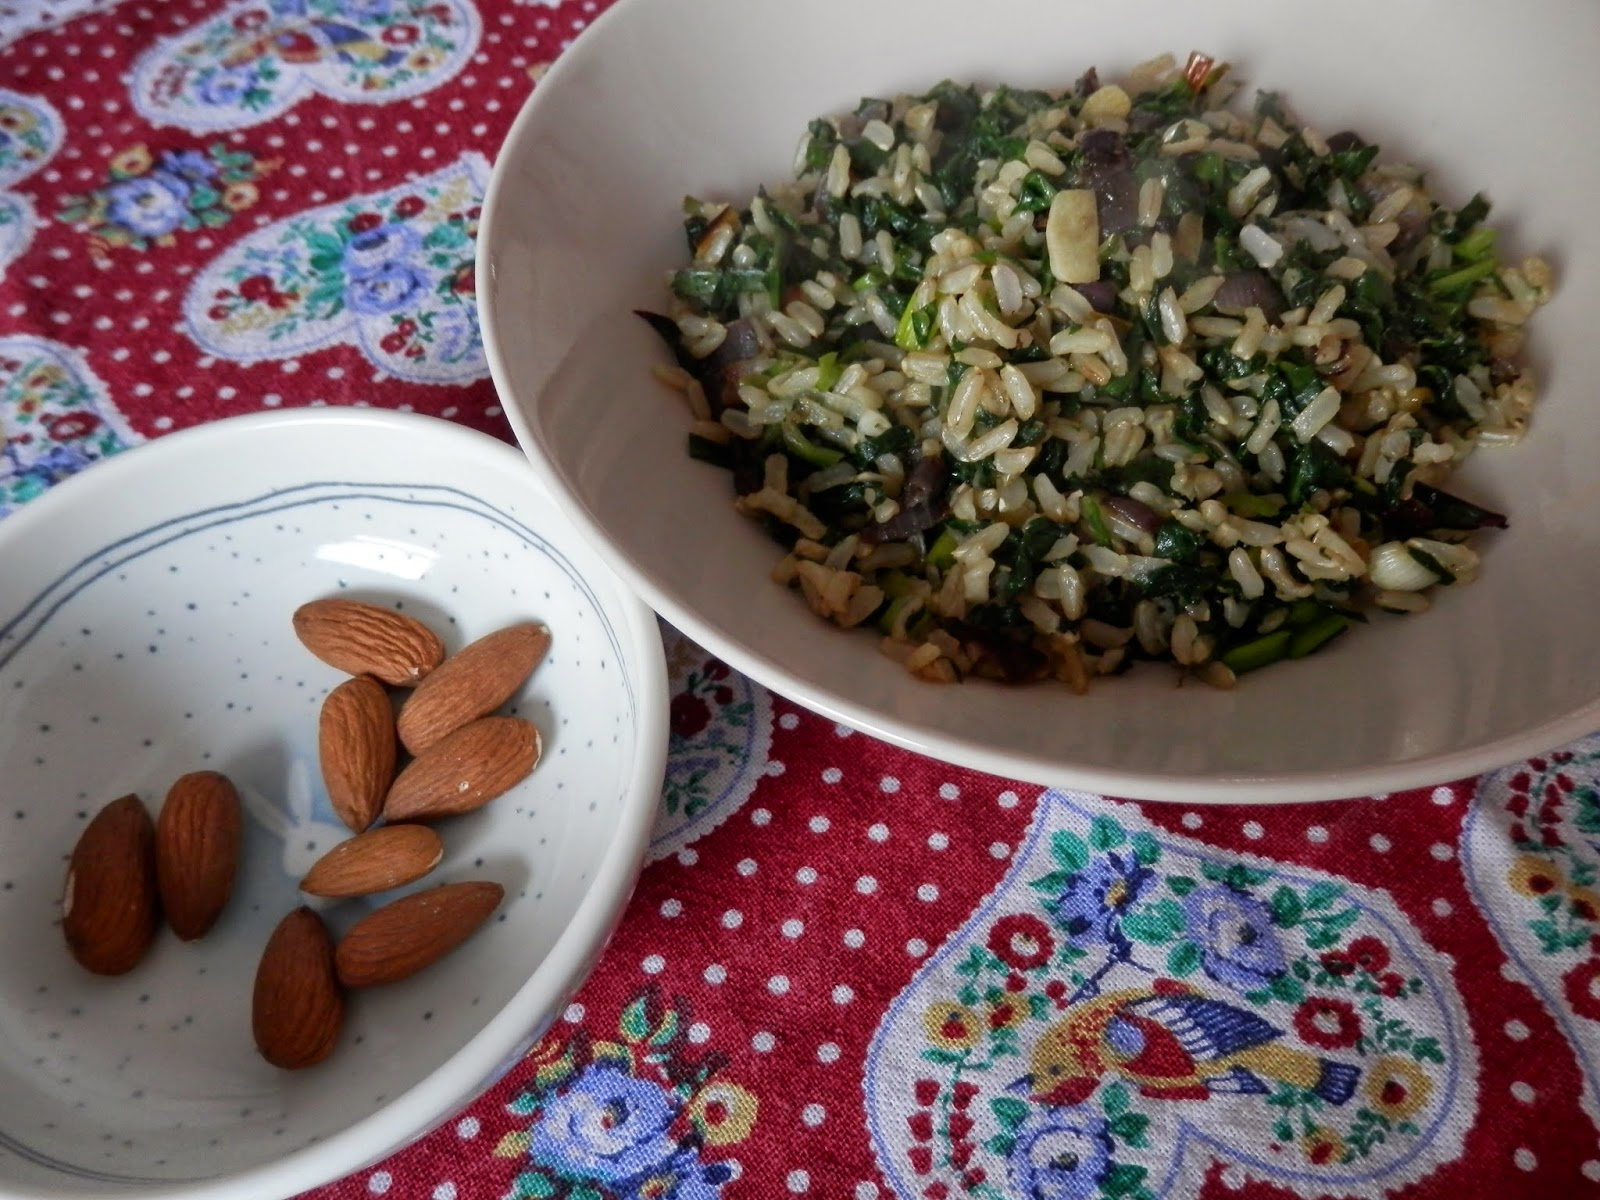 Vegan meal idea, vegan spinach and brown rice. secondhandsusie.blogspot.co.uk